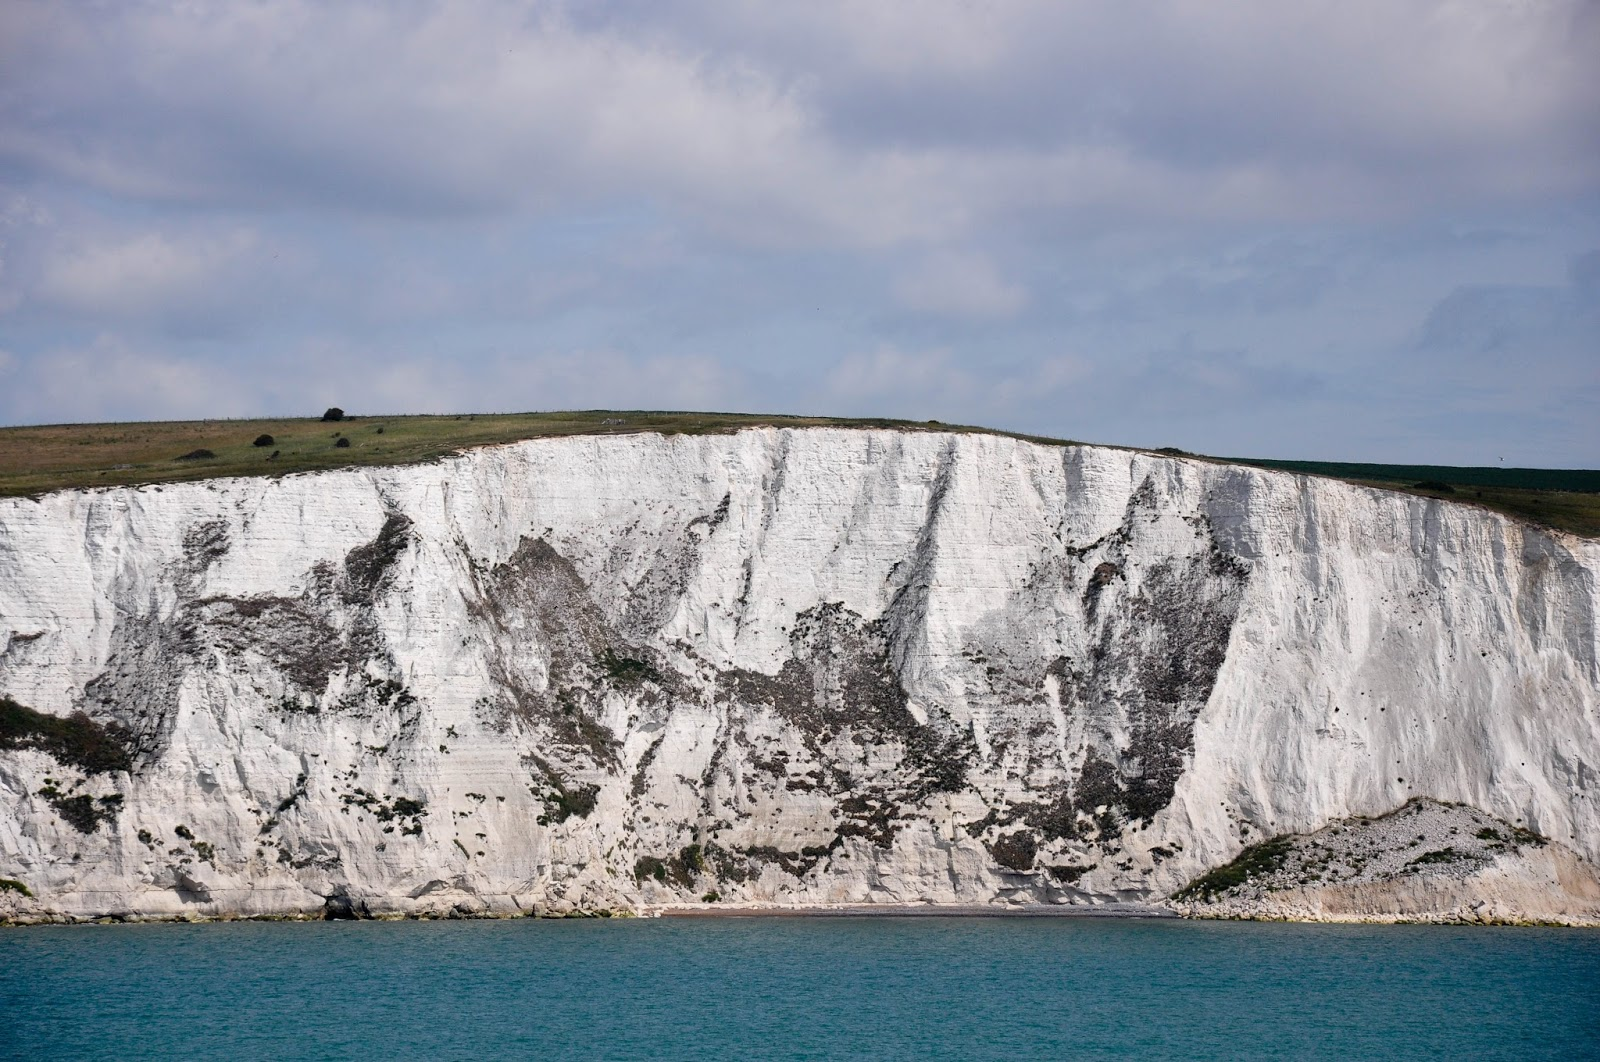 A close-up of the white cliffs of Dover seen from a DFDS ferry after crossing the English Channel back from France